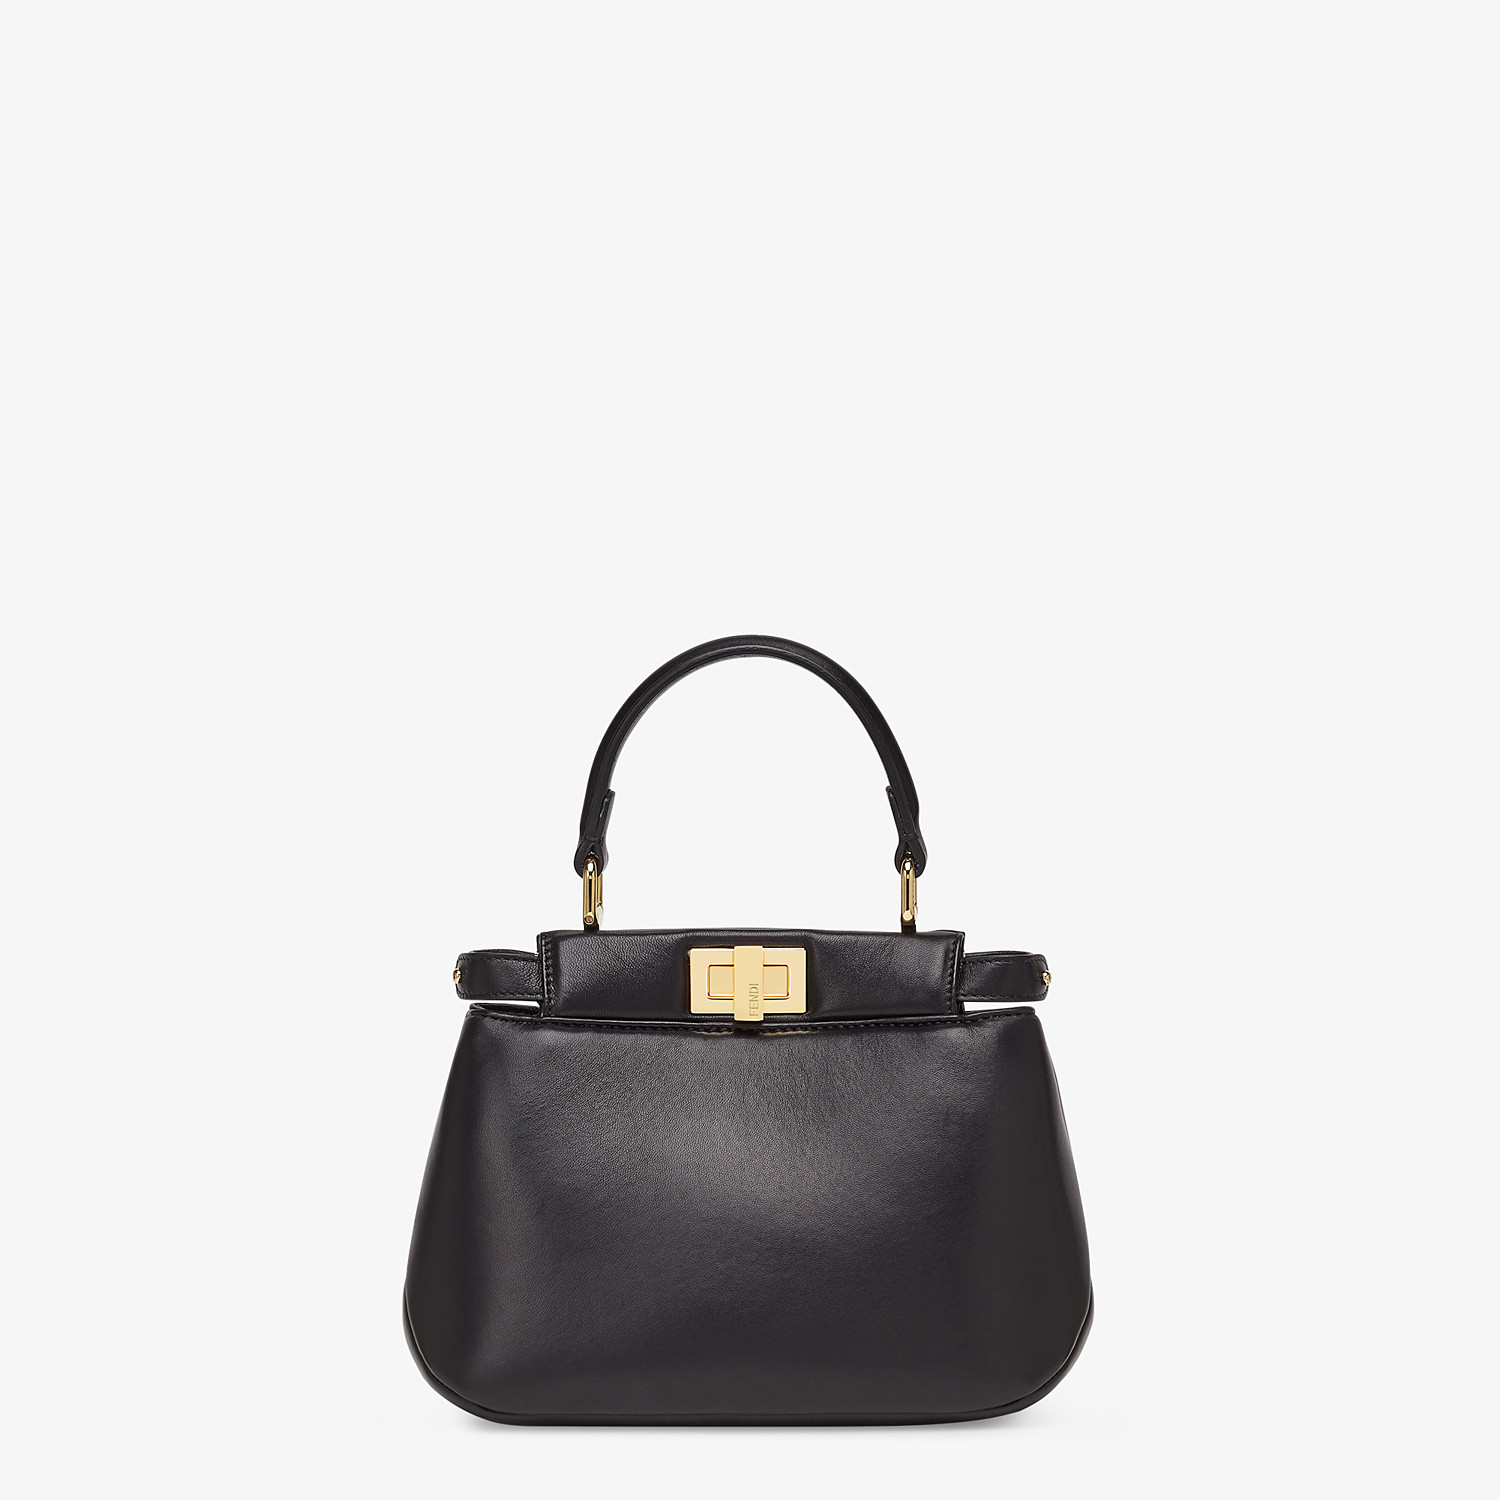 FENDI PEEKABOO ICONIC XS - Black nappa leather bag - view 1 detail